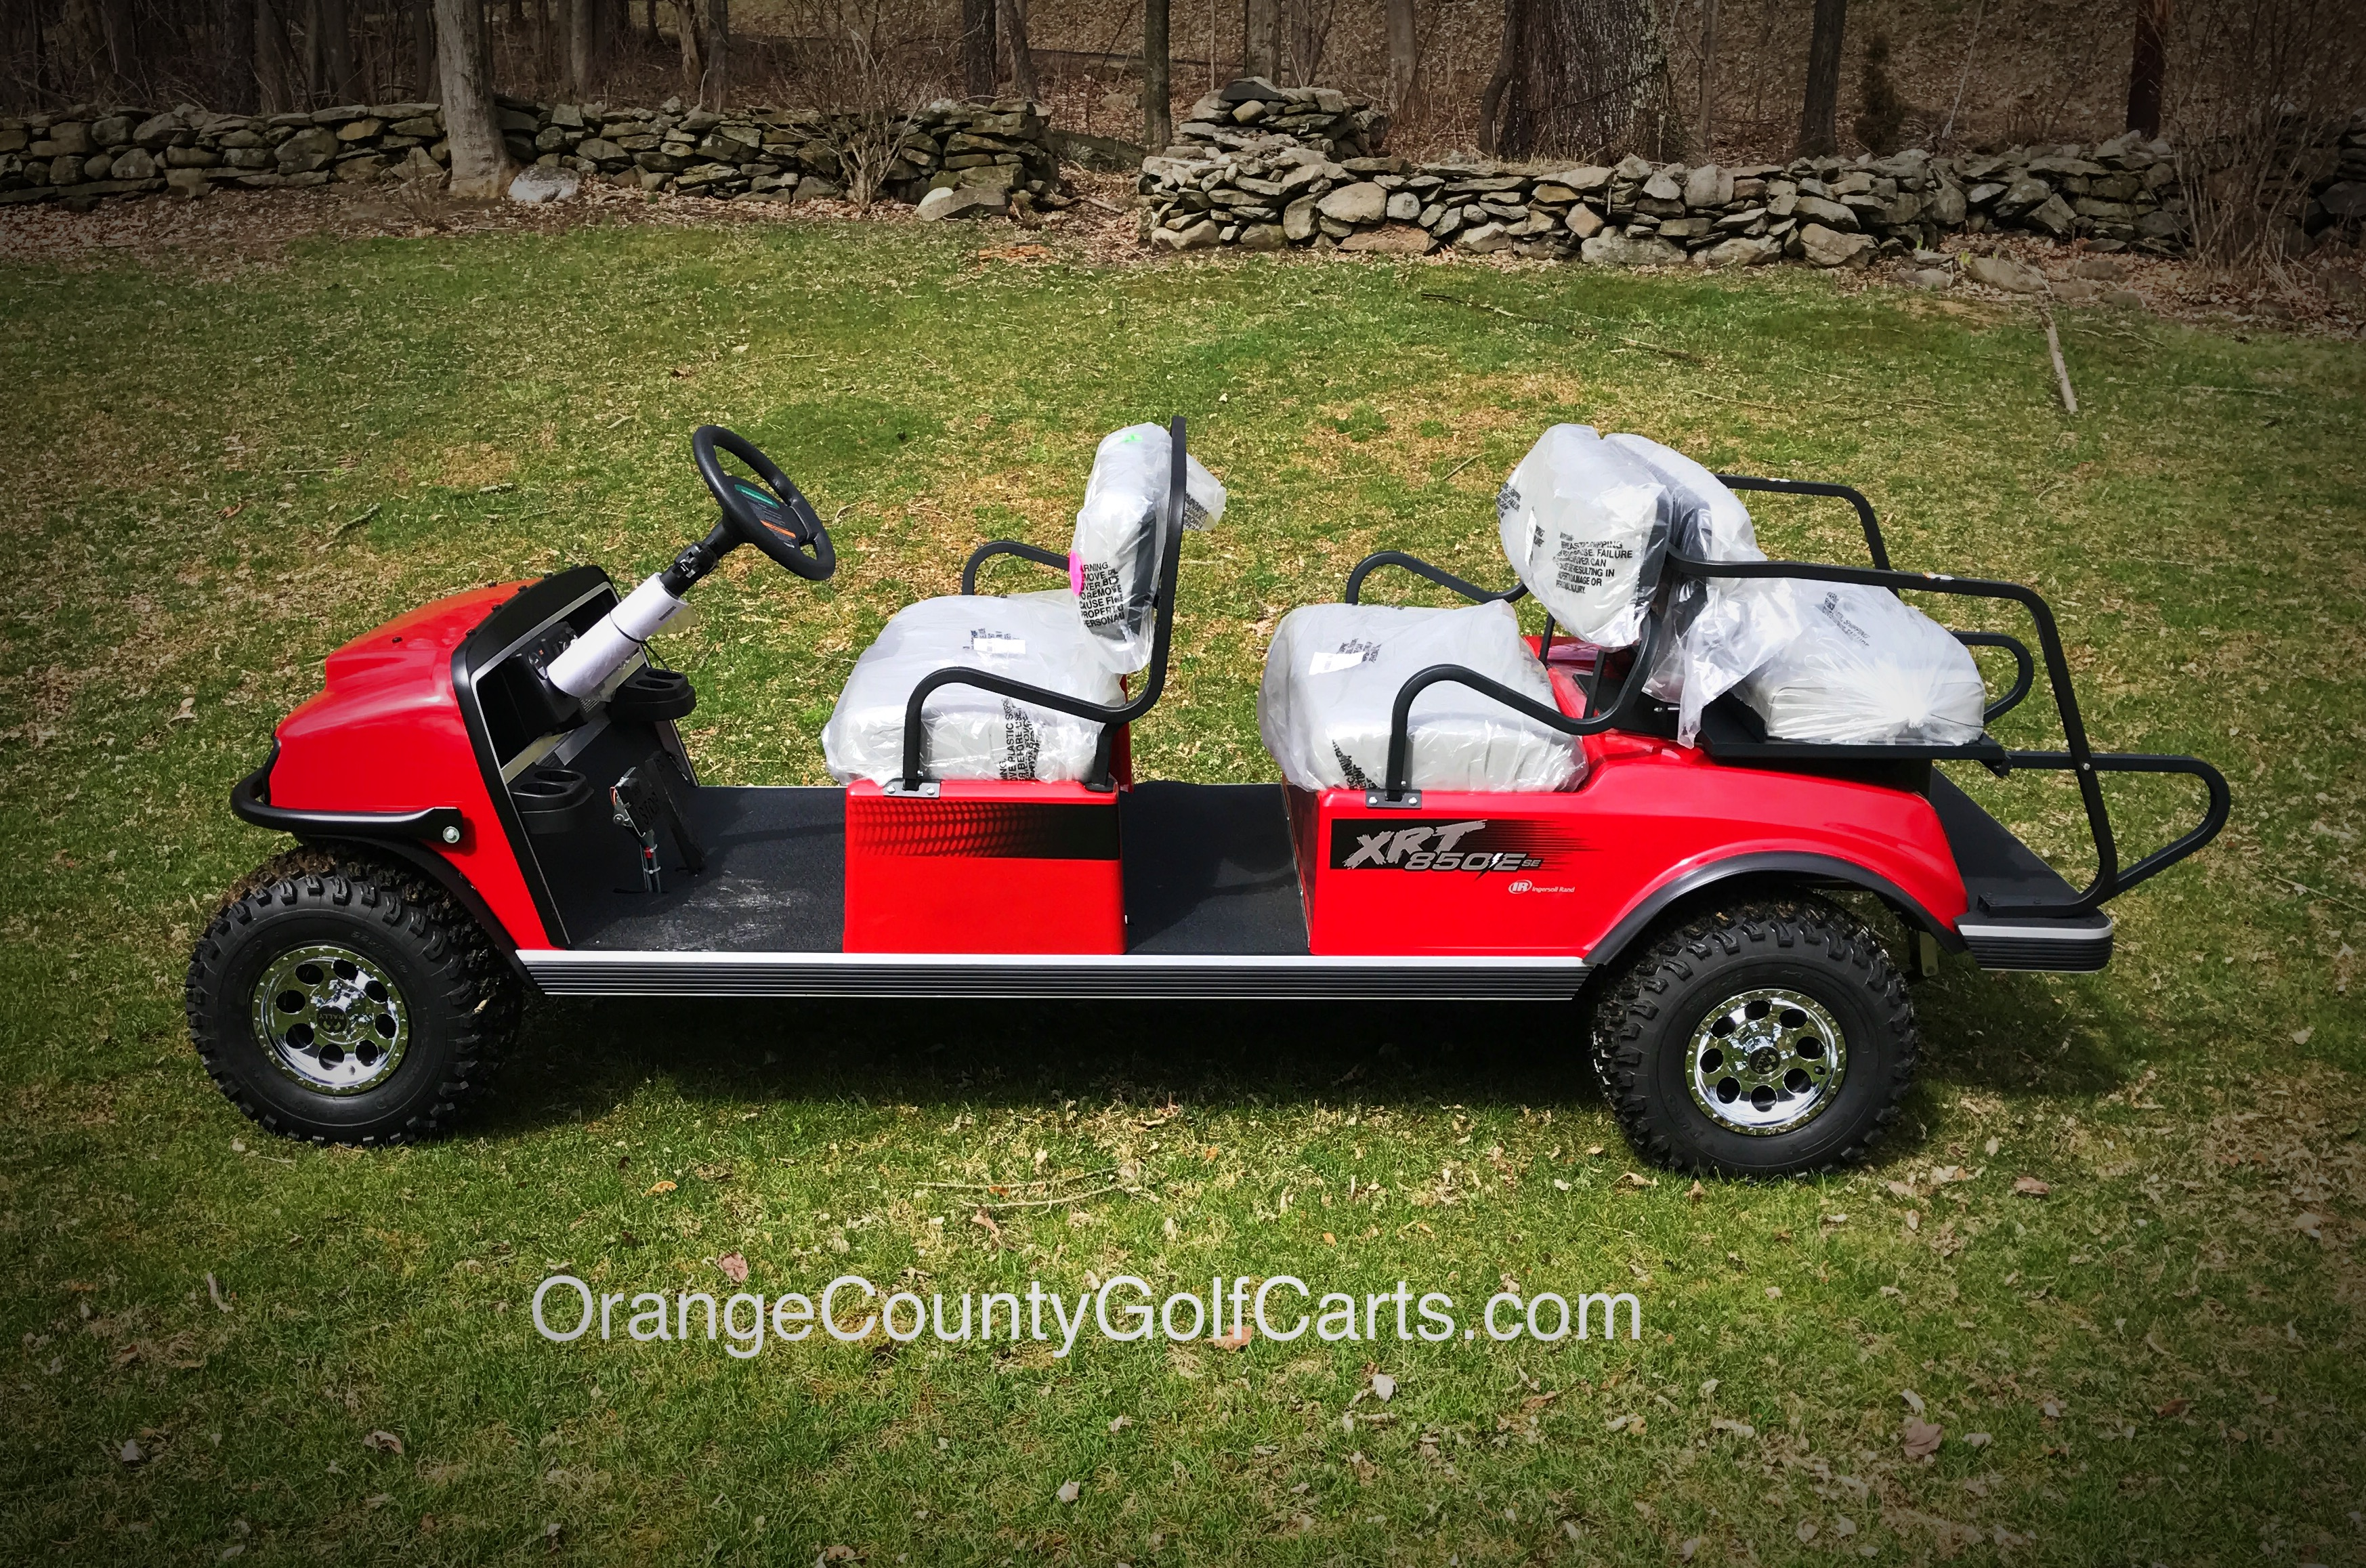 Golf Cars by Diane